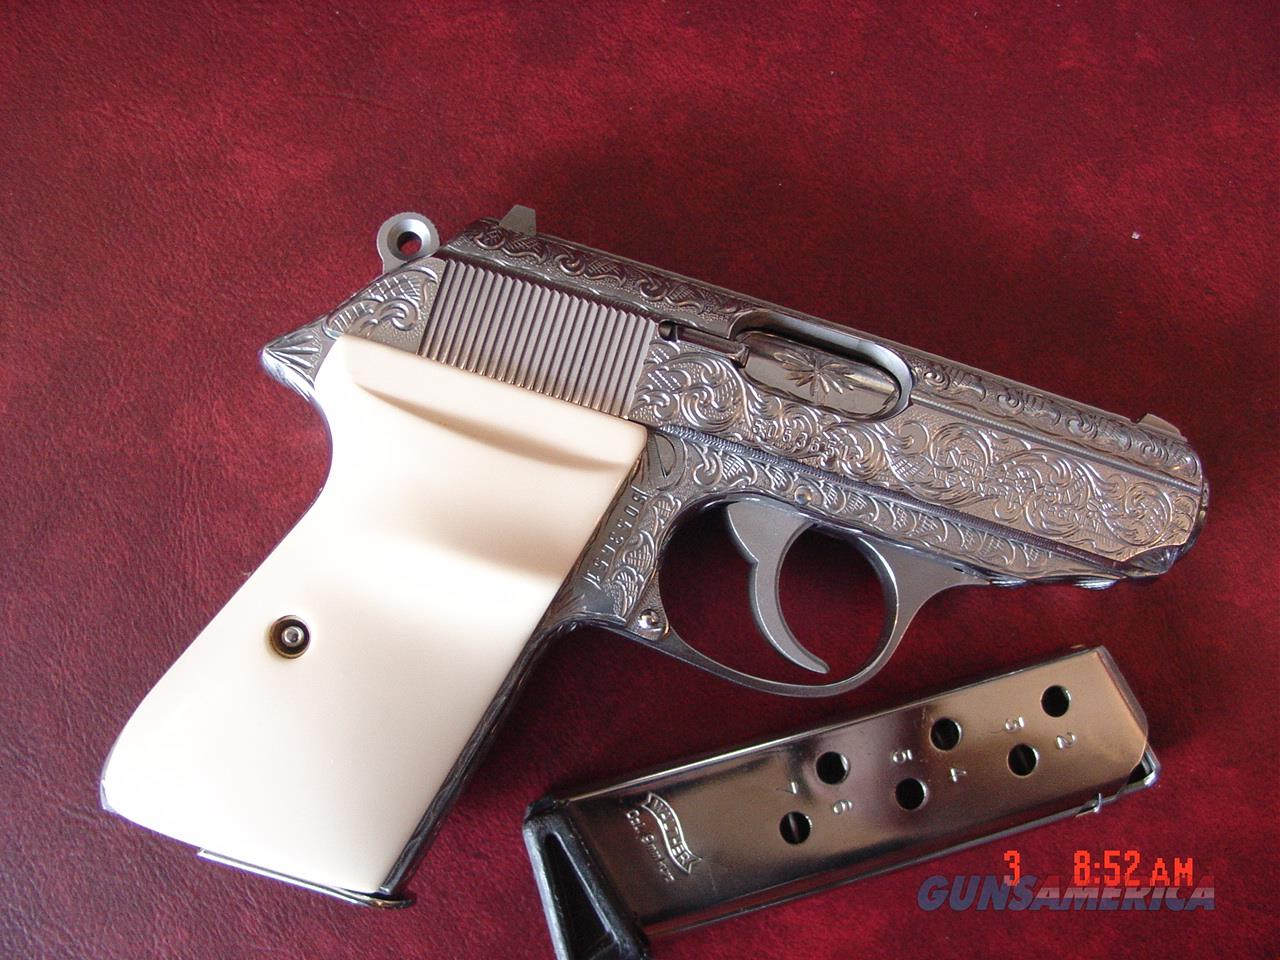 Walther PPK/S 380,Interarms,fully deep hand engraved & polished by Flannery Engraving,Bonded Ivory grips,box,2 mags,certificate,target etc.a true masterpiece- awesome !!  Guns > Pistols > Walther Pistols > Post WWII > PPK Series